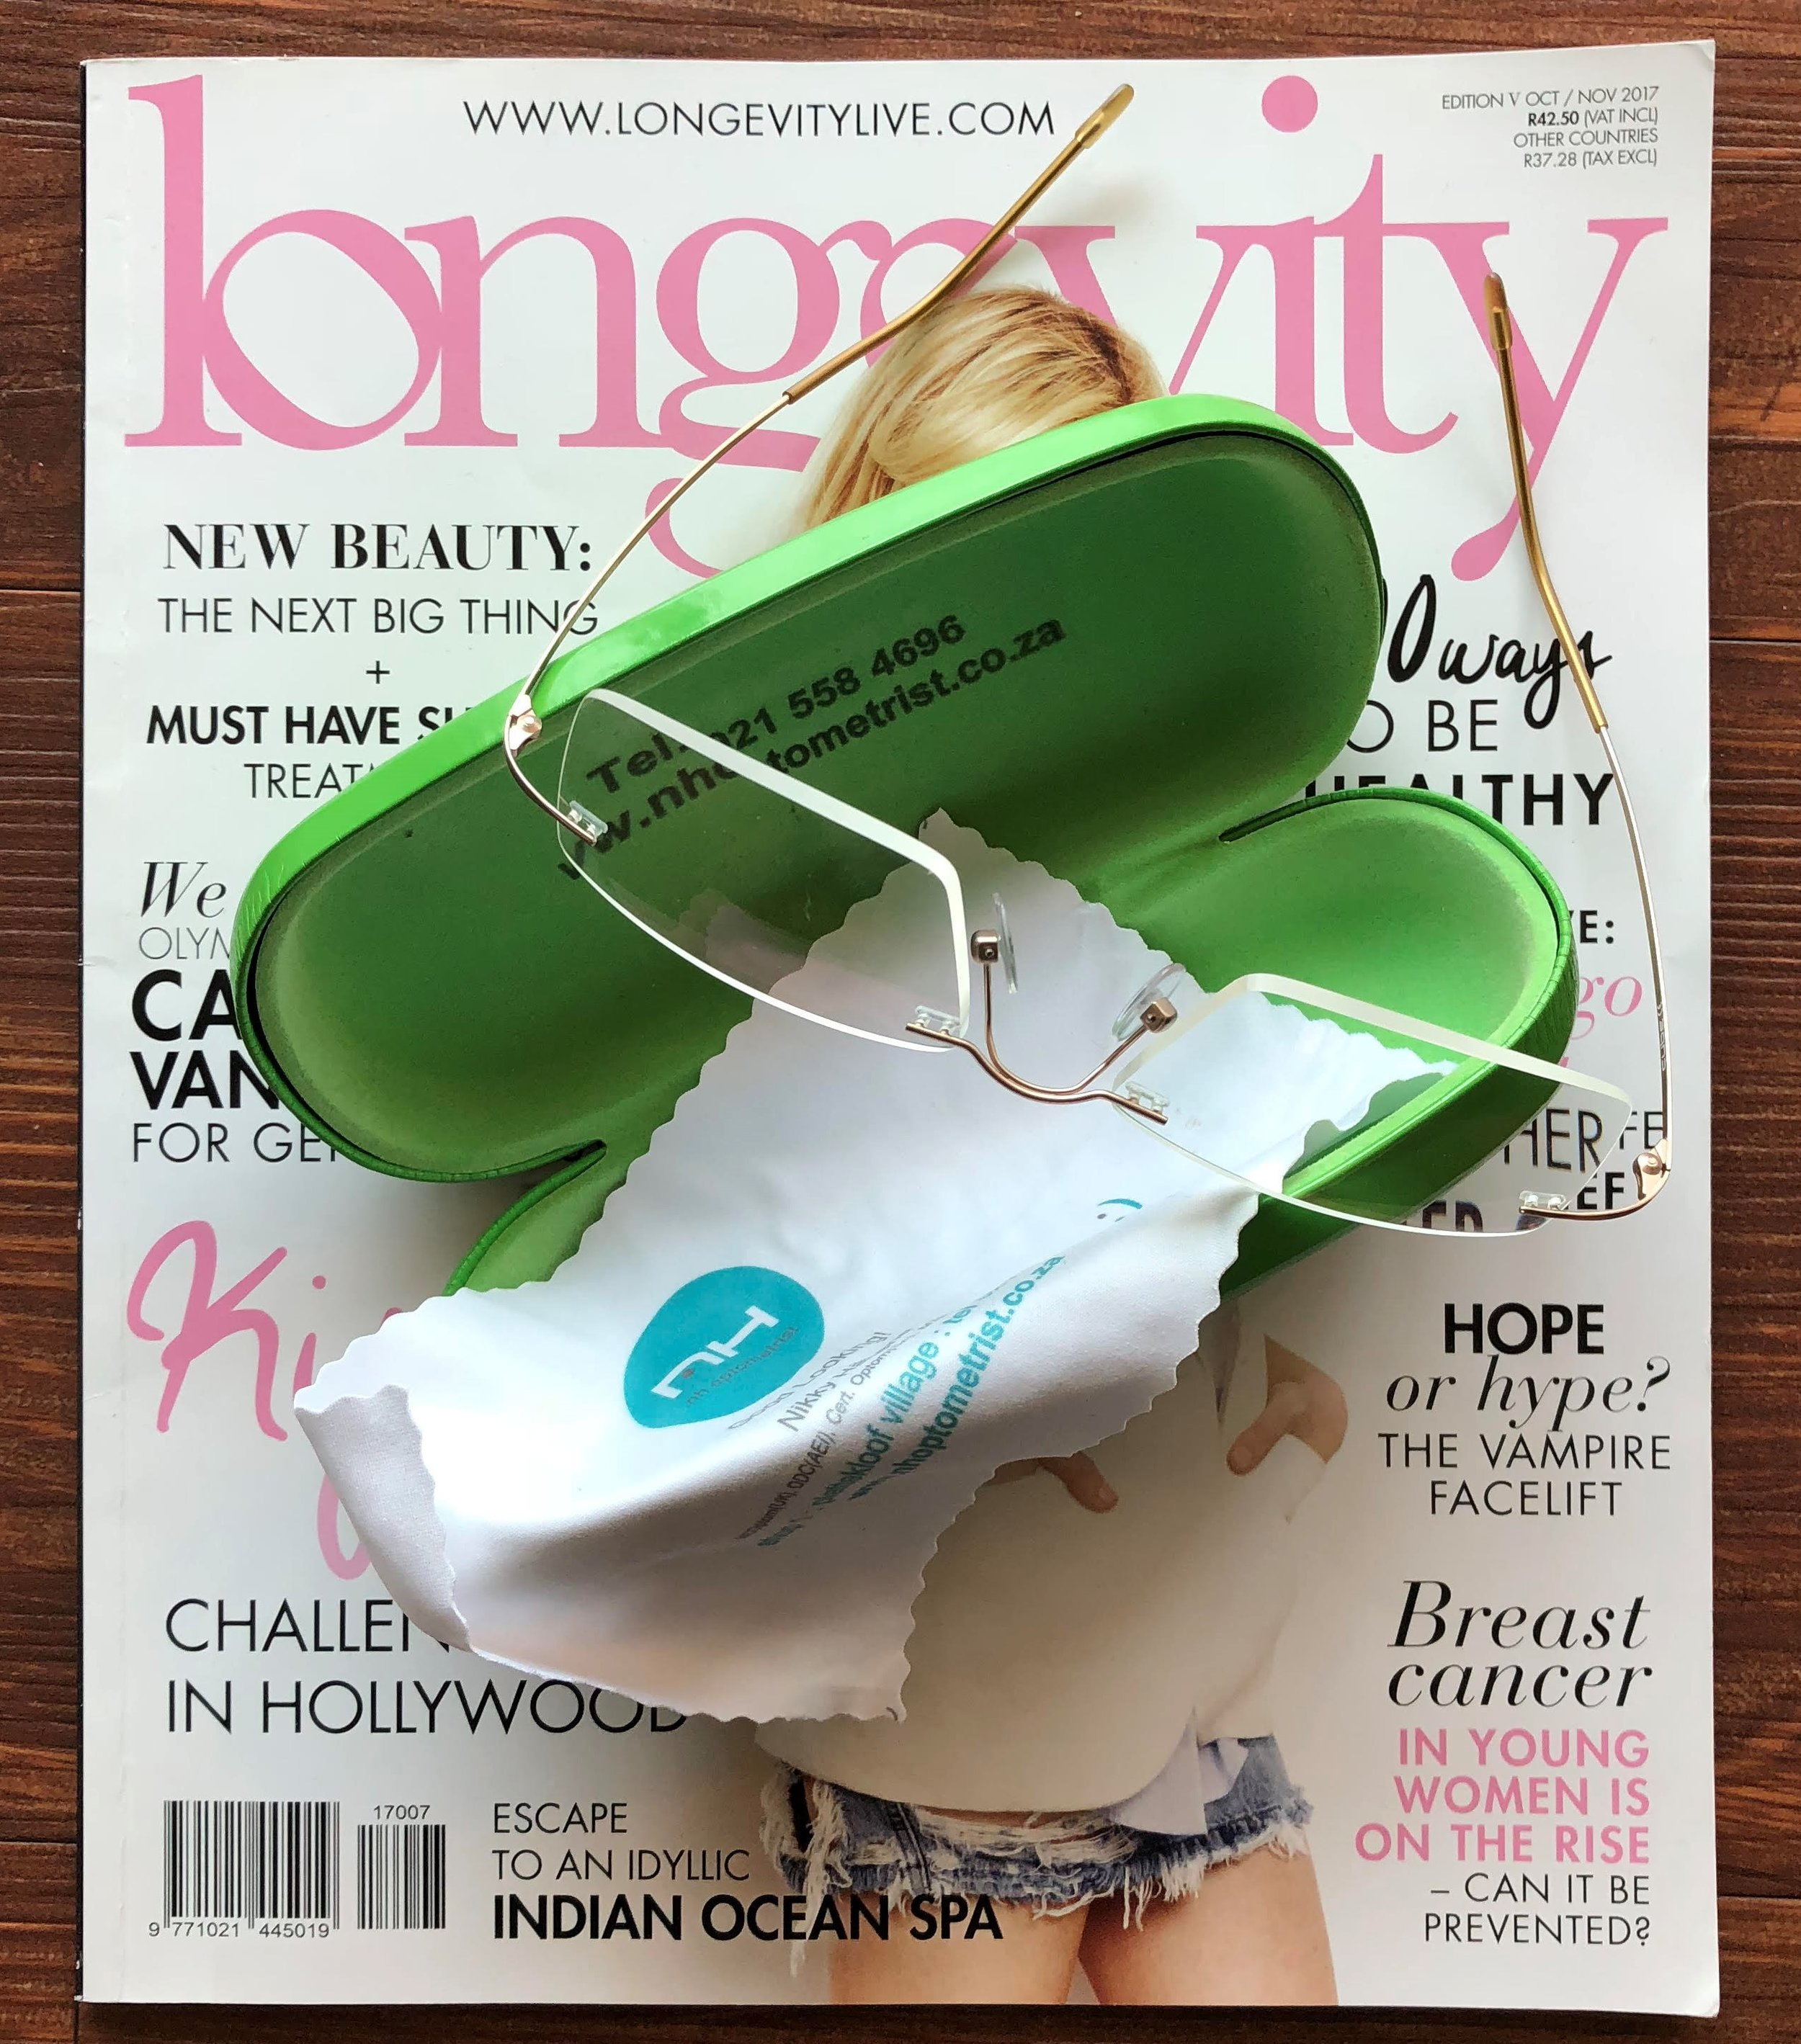 Longevity Magazine & Reading Glasses ©Flyga Twiga LLC